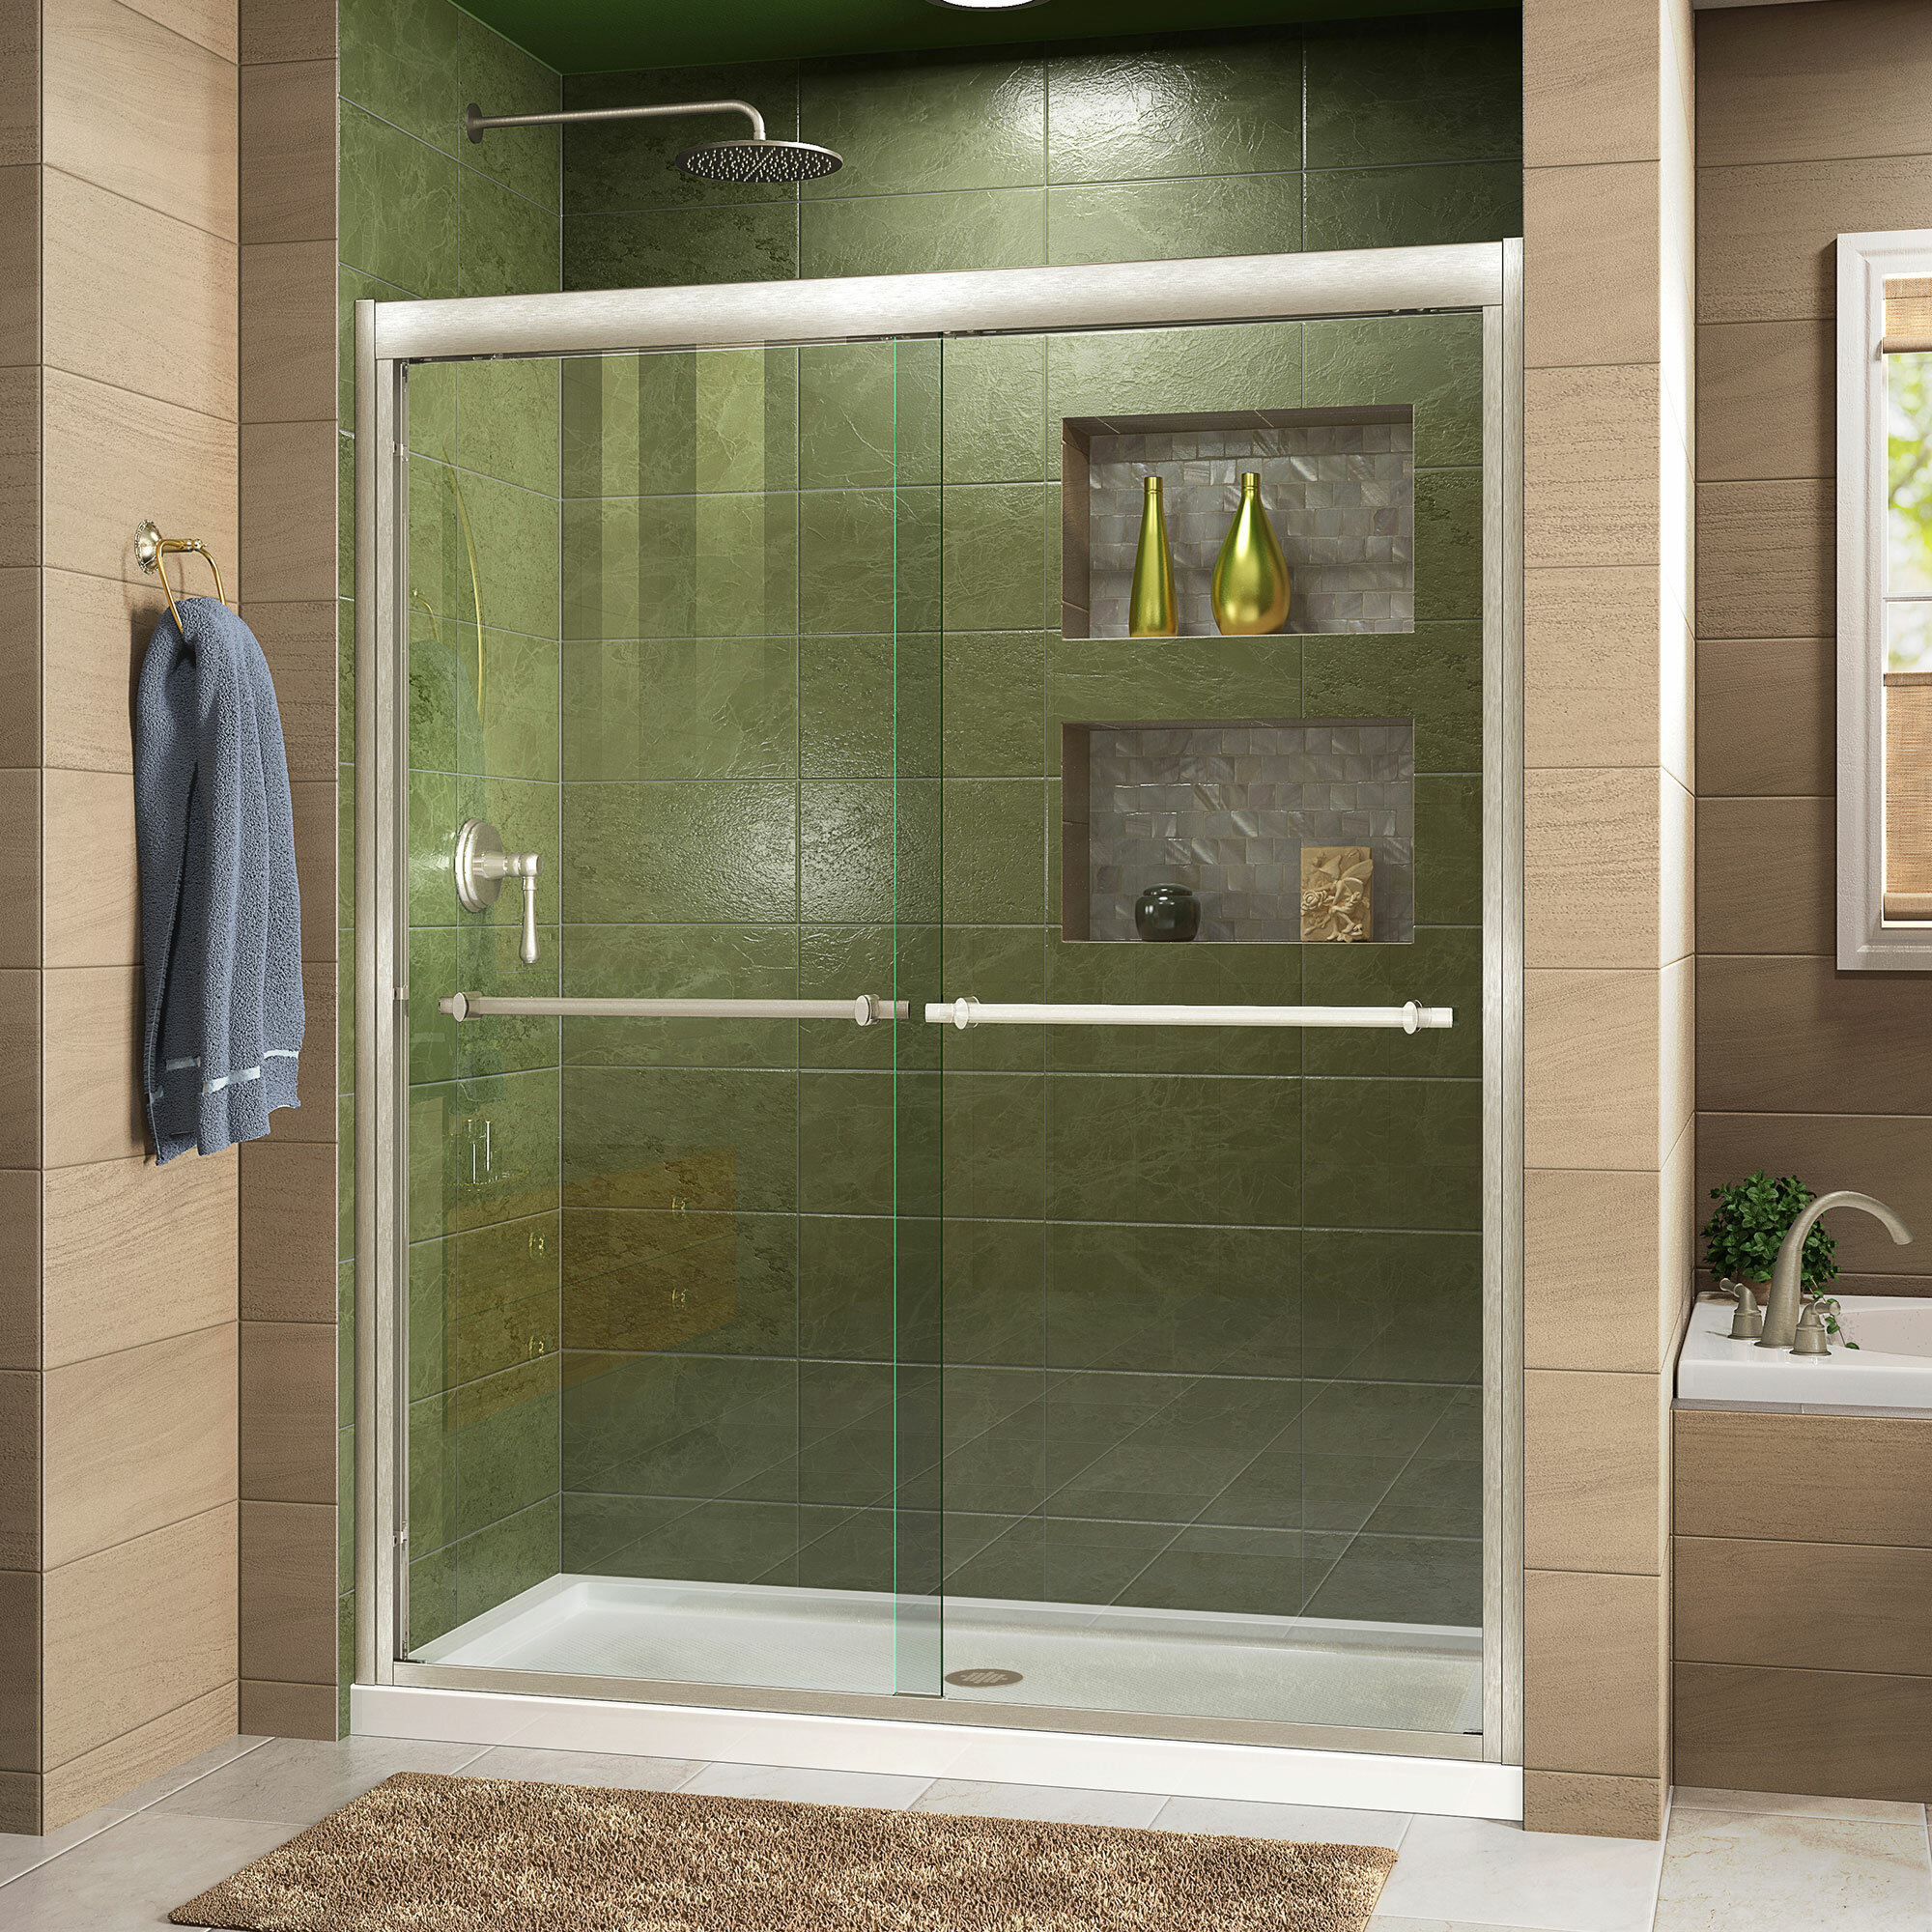 Dreamline Duet 60 X 7475 Bypass Semi Frameless Shower Door Wayfair